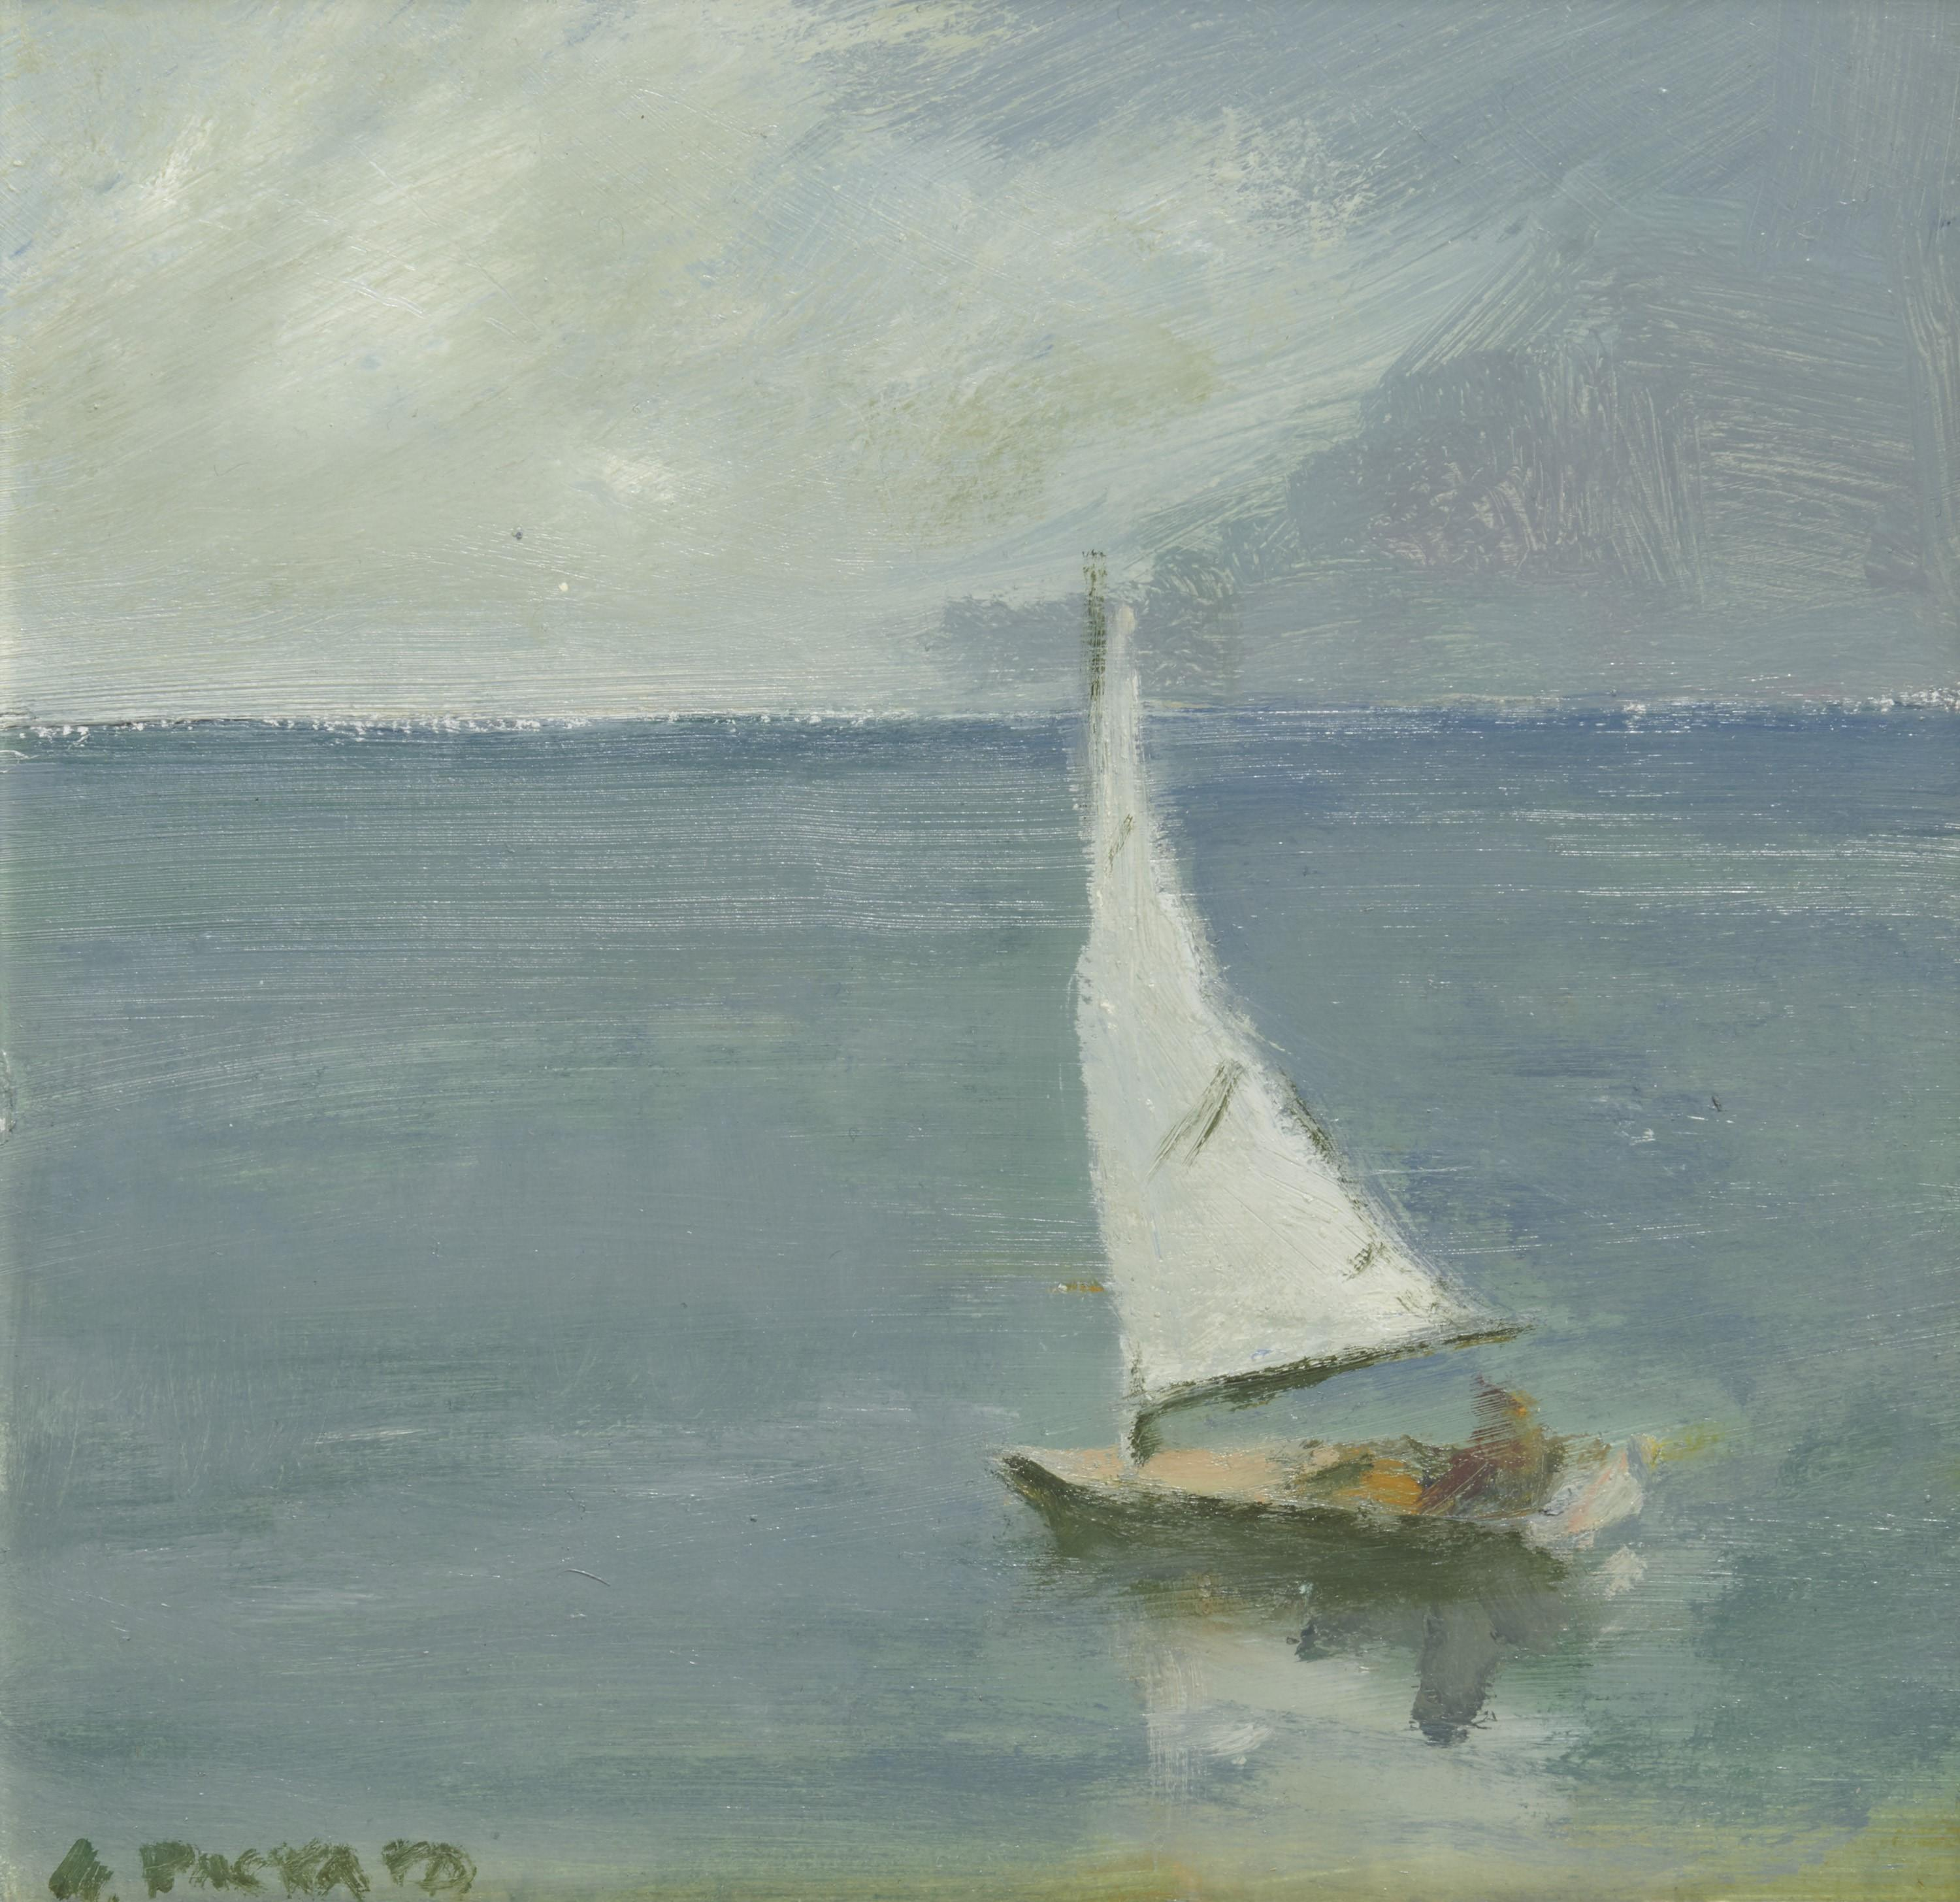 ANNE PACKARD, (American, b. 1933), Heading Out, oil on board, 8 x 8 in., frame: 10 3/4 x 10 3/4 in.